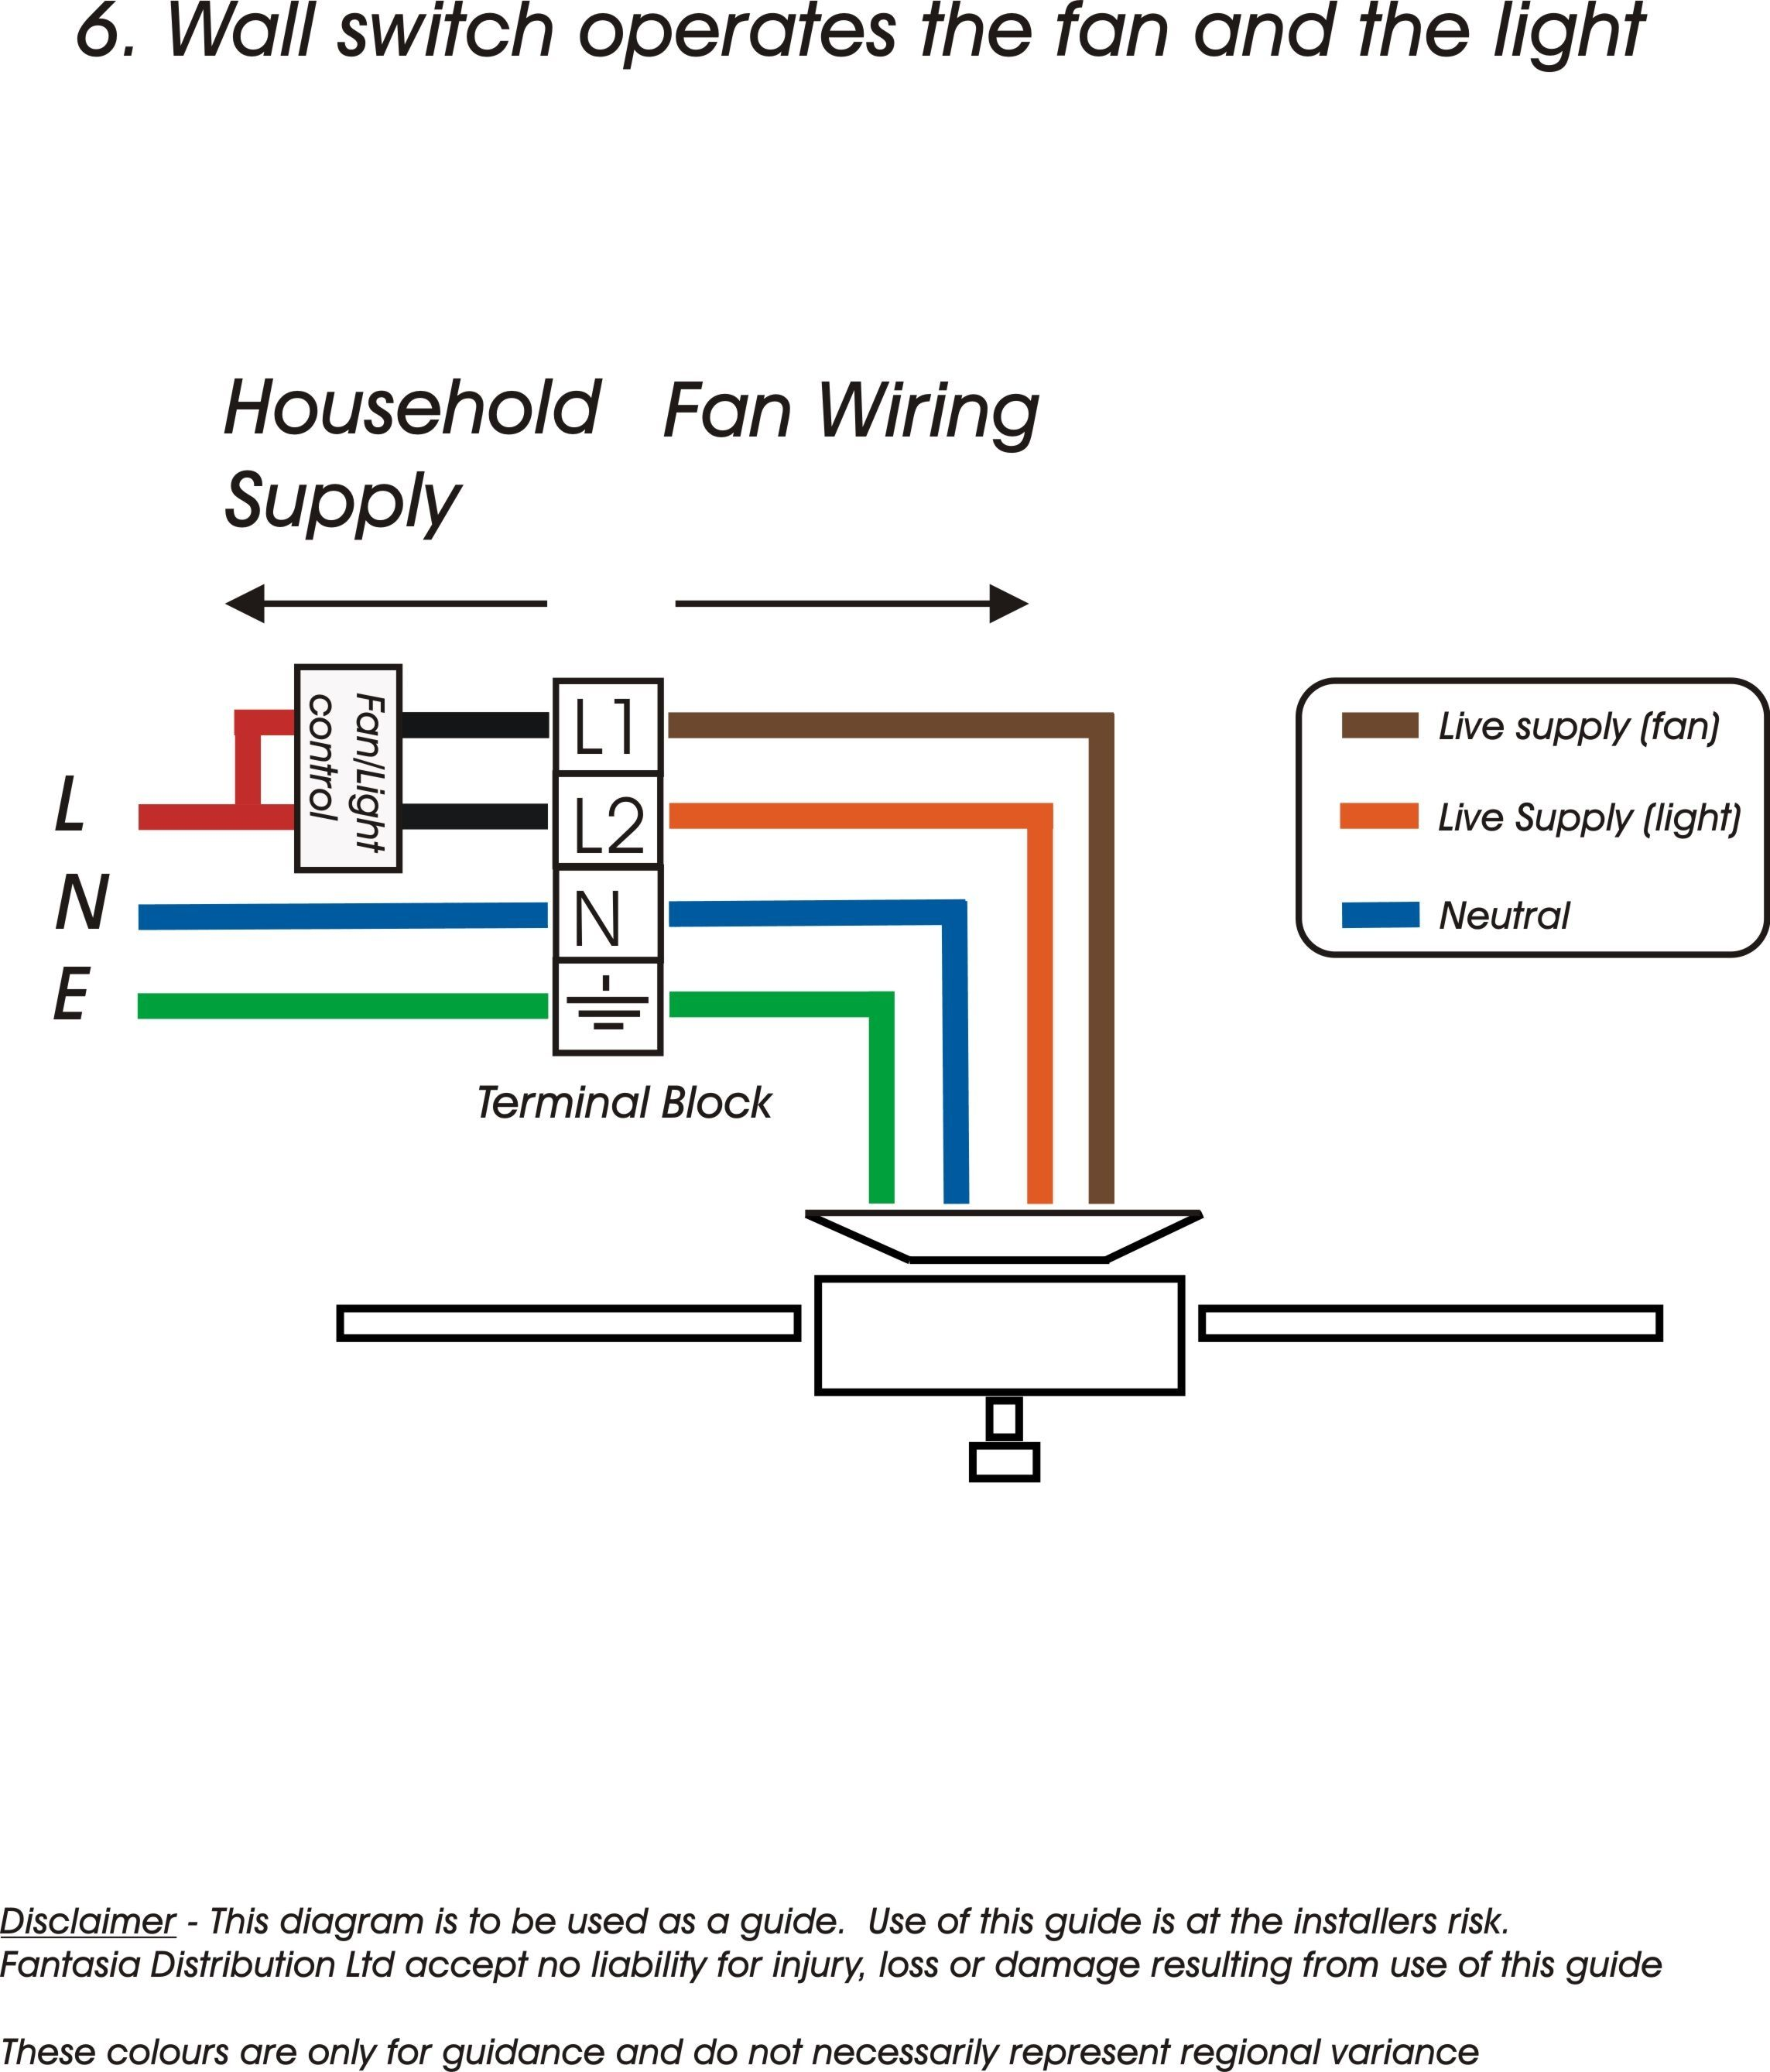 Openenergymonitor On 3 Sd Fan Switch Wiring To Wall Ceiling | Better on leviton 4 way switch diagram, 4 speed diagram, switch connection diagram, 4 switch circuit, 4 switch cover, 4 wire switch diagram, 3-way switch diagram, 4-way circuit diagram,